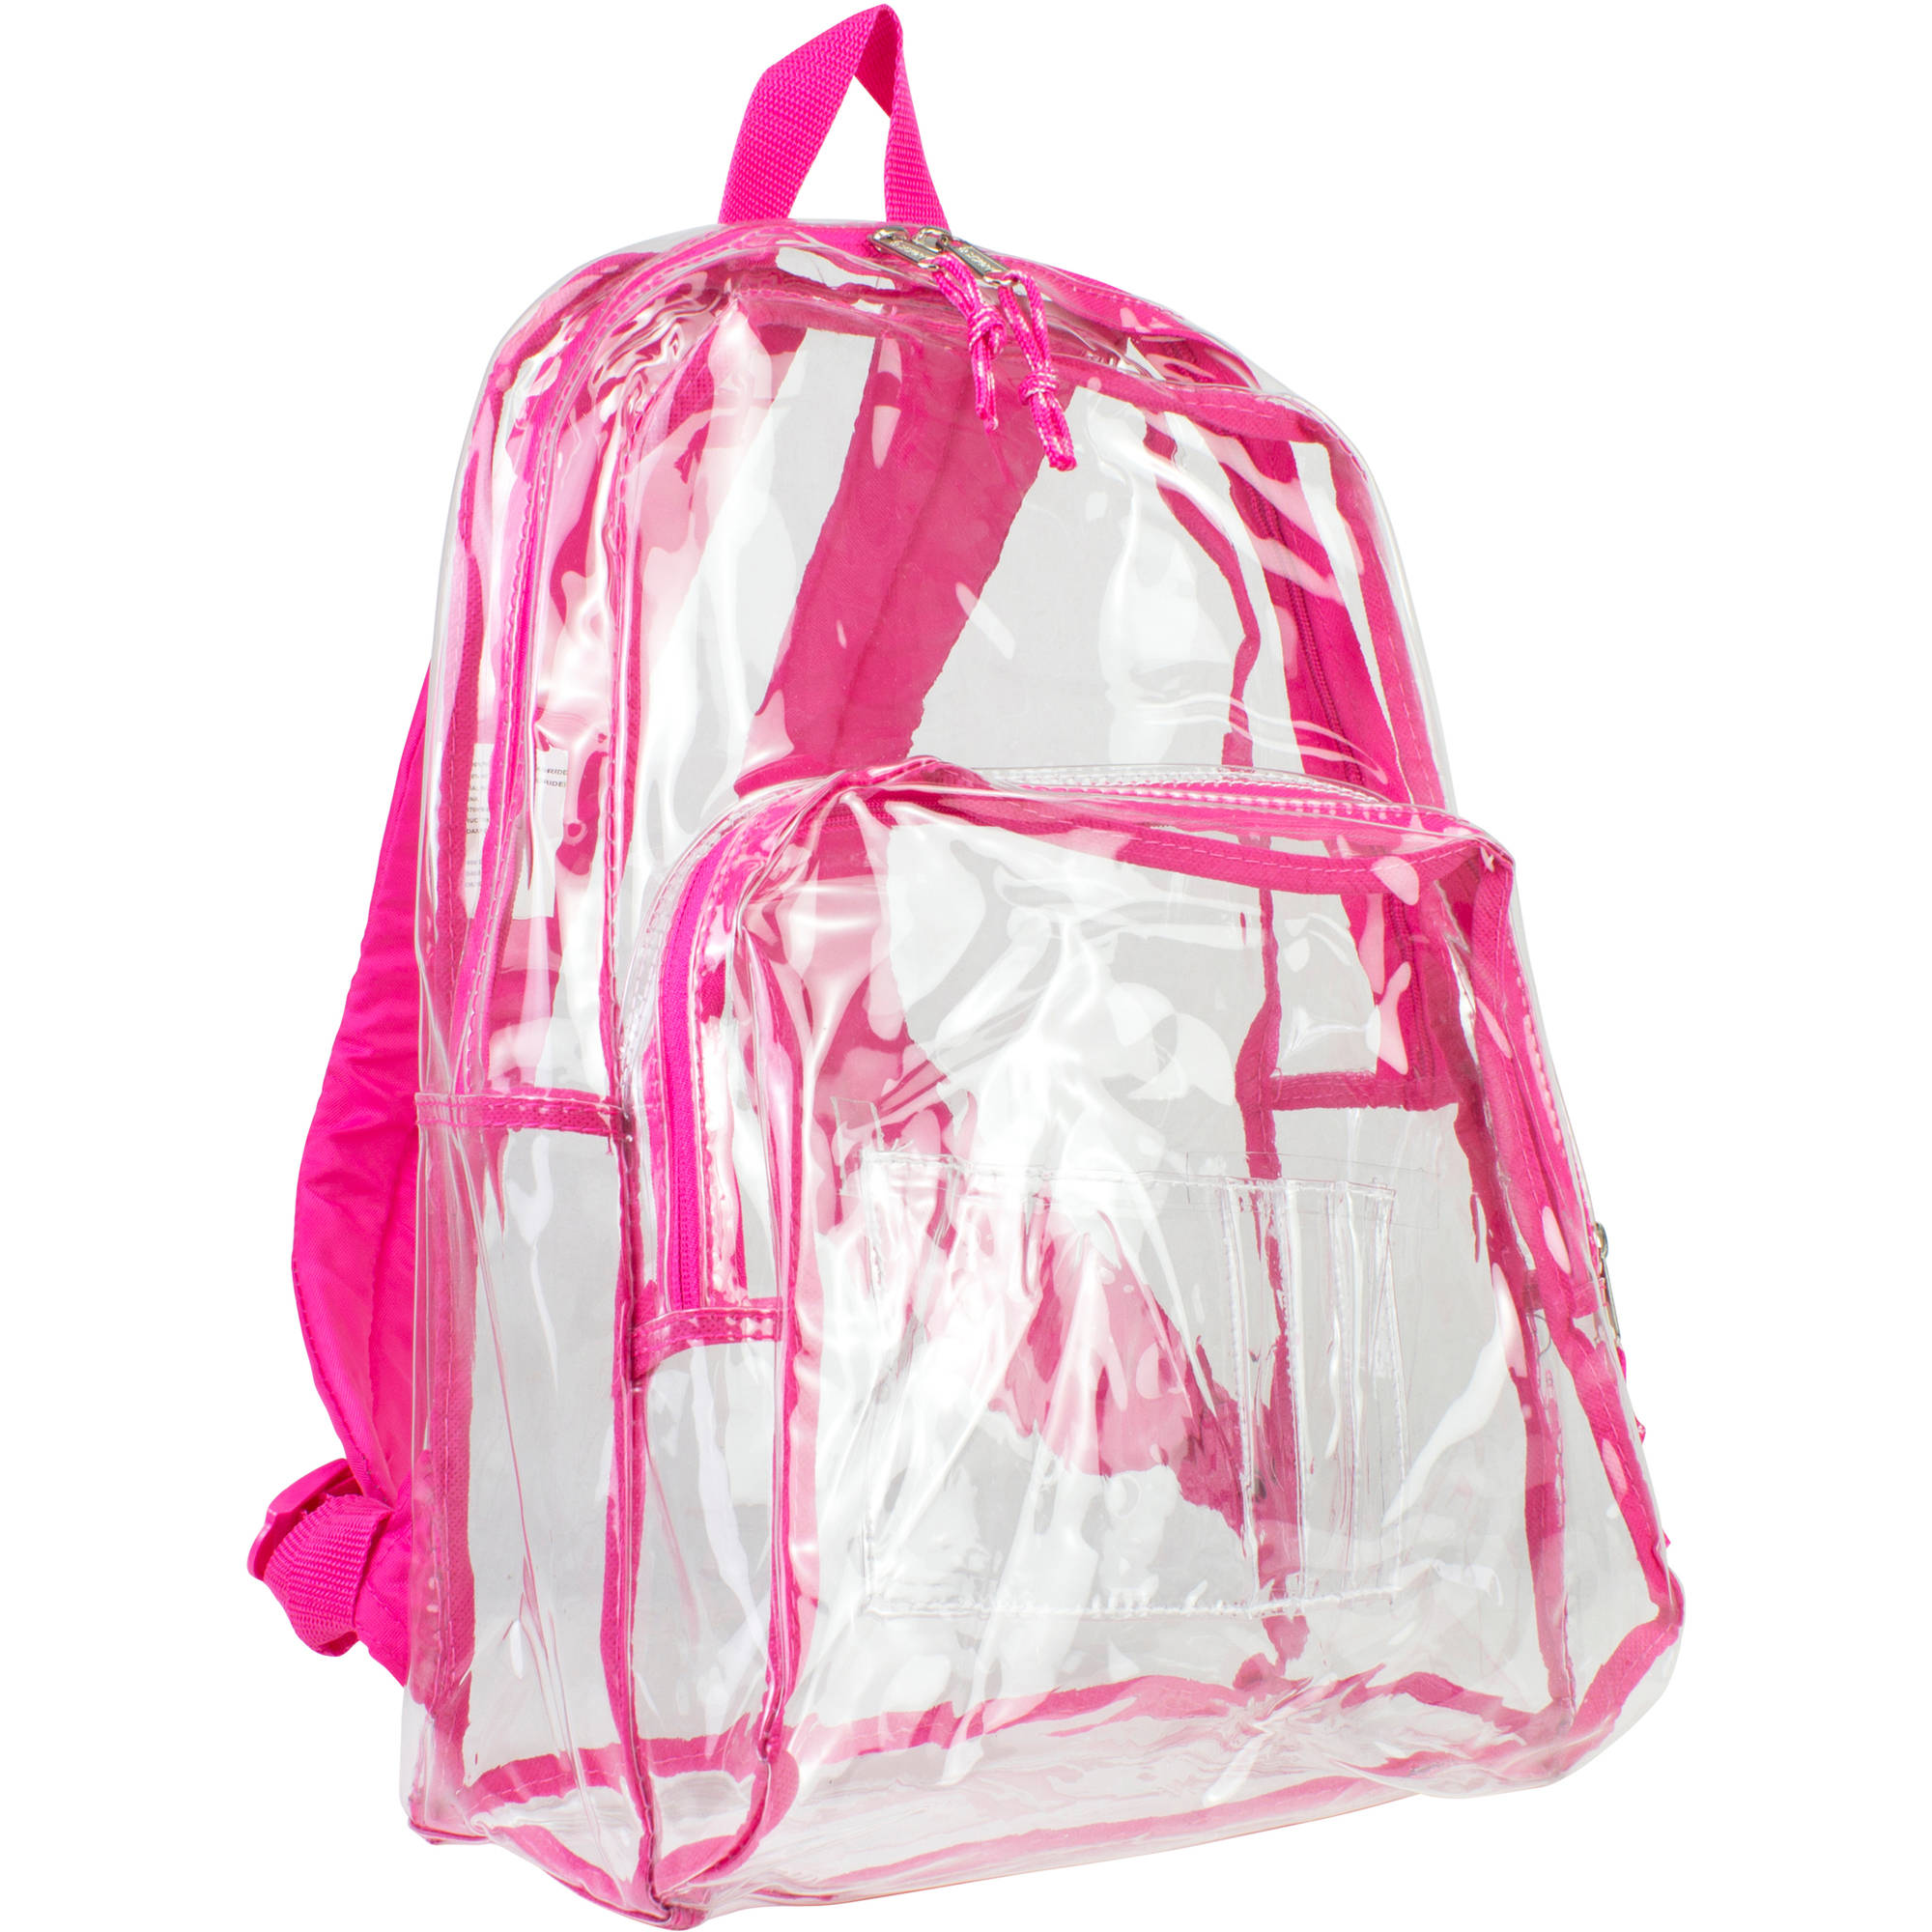 "Eastsport 17.5"" Clear with Pink Trim Backpack"